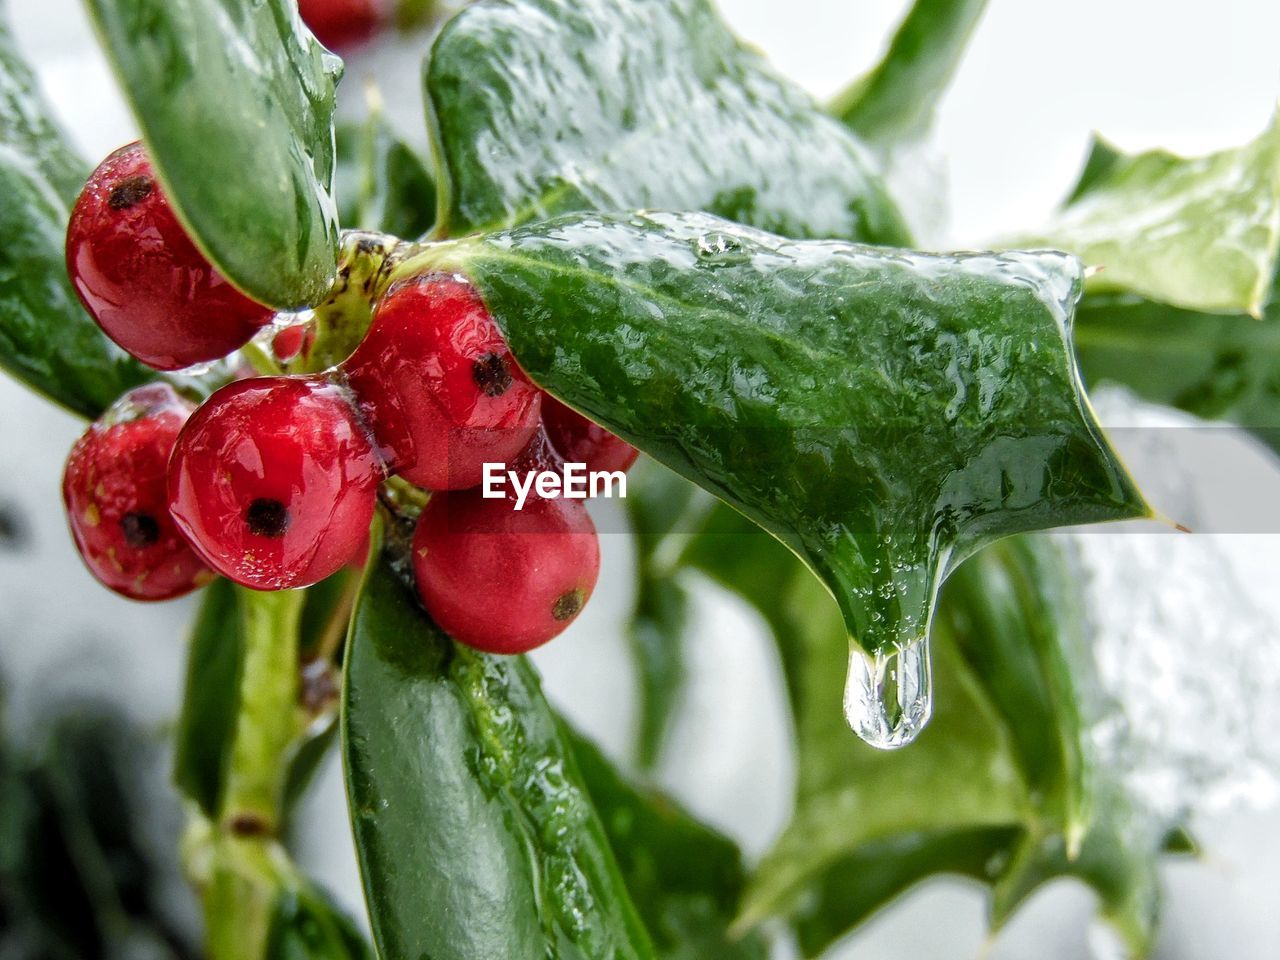 red, green color, close-up, growth, leaf, plant part, plant, food and drink, freshness, food, fruit, focus on foreground, nature, beauty in nature, no people, healthy eating, day, wellbeing, water, ripe